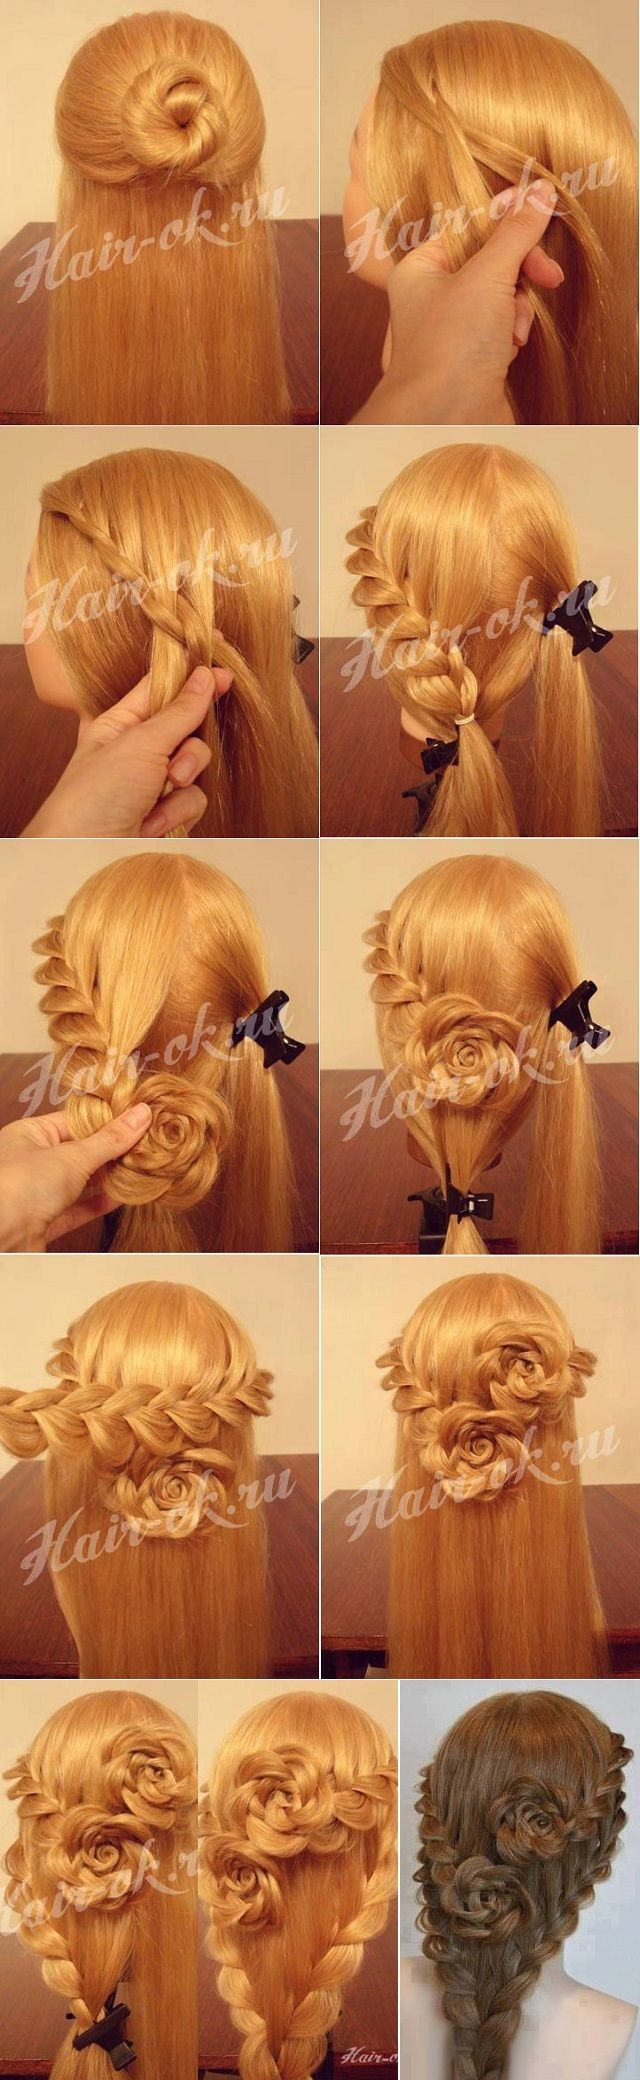 Rose Bud Flower Braid Hairstyle – Tutorial Not that I'll ever be able to actually do this...메가플레이온카지노메가플레이온카지노메가플레이온카지노메가플레이온카지노메가플레이온카지노메가플레이온카지노메가플레이온카지노메가플레이온카지노